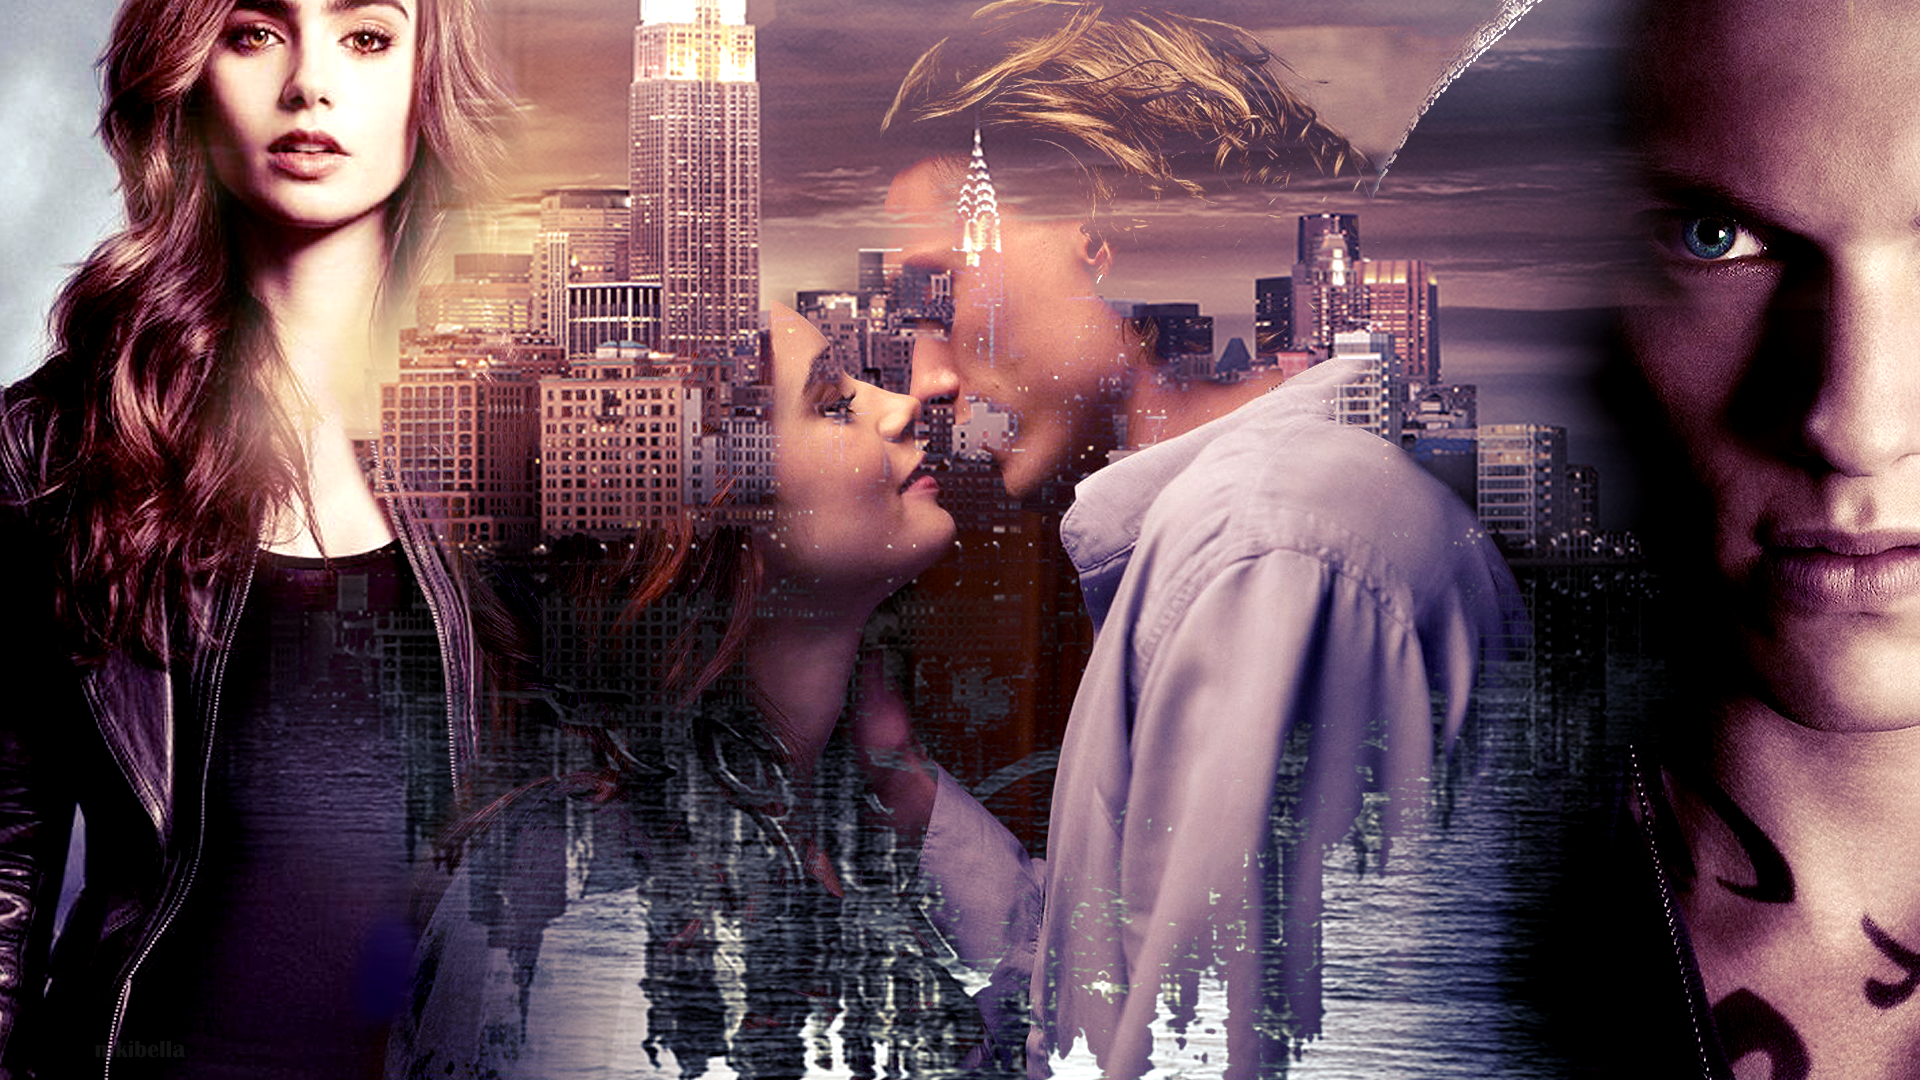 the mortal instruments city of bones wallpapers (7 wallpapers) – art